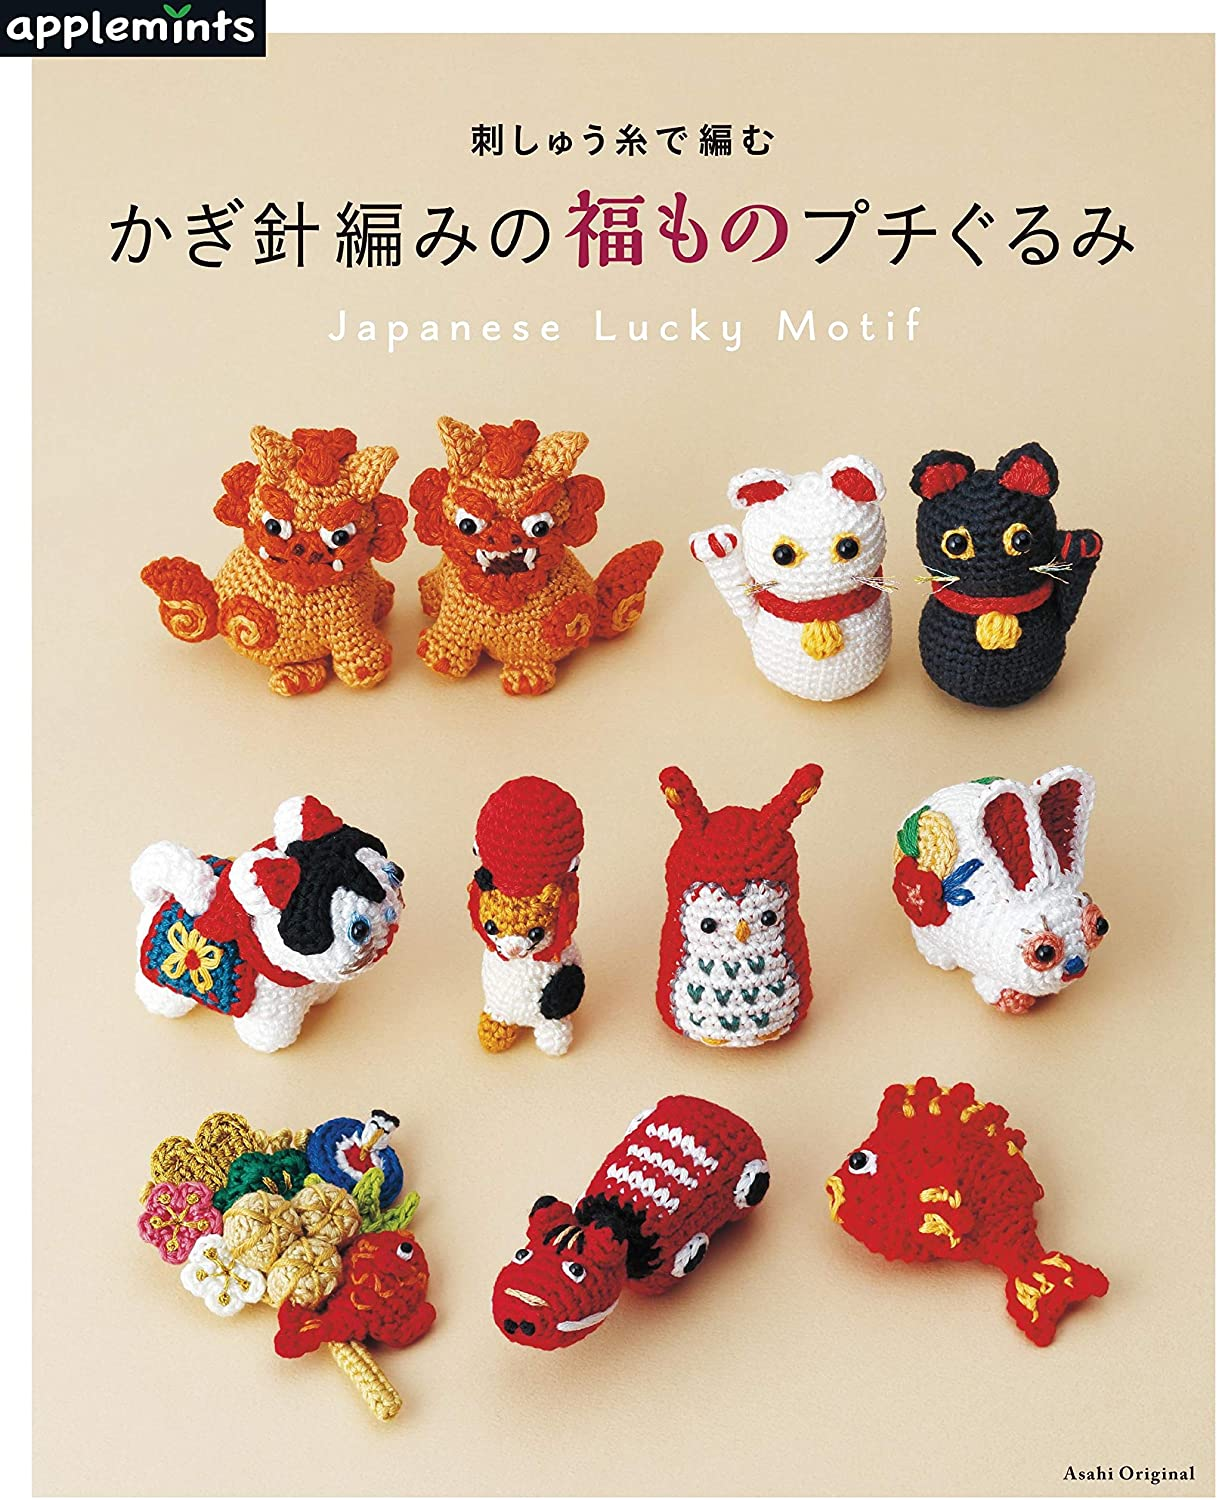 Knitting crochet fortune stuffed with embroidery thread Petit toy (Asahi original)